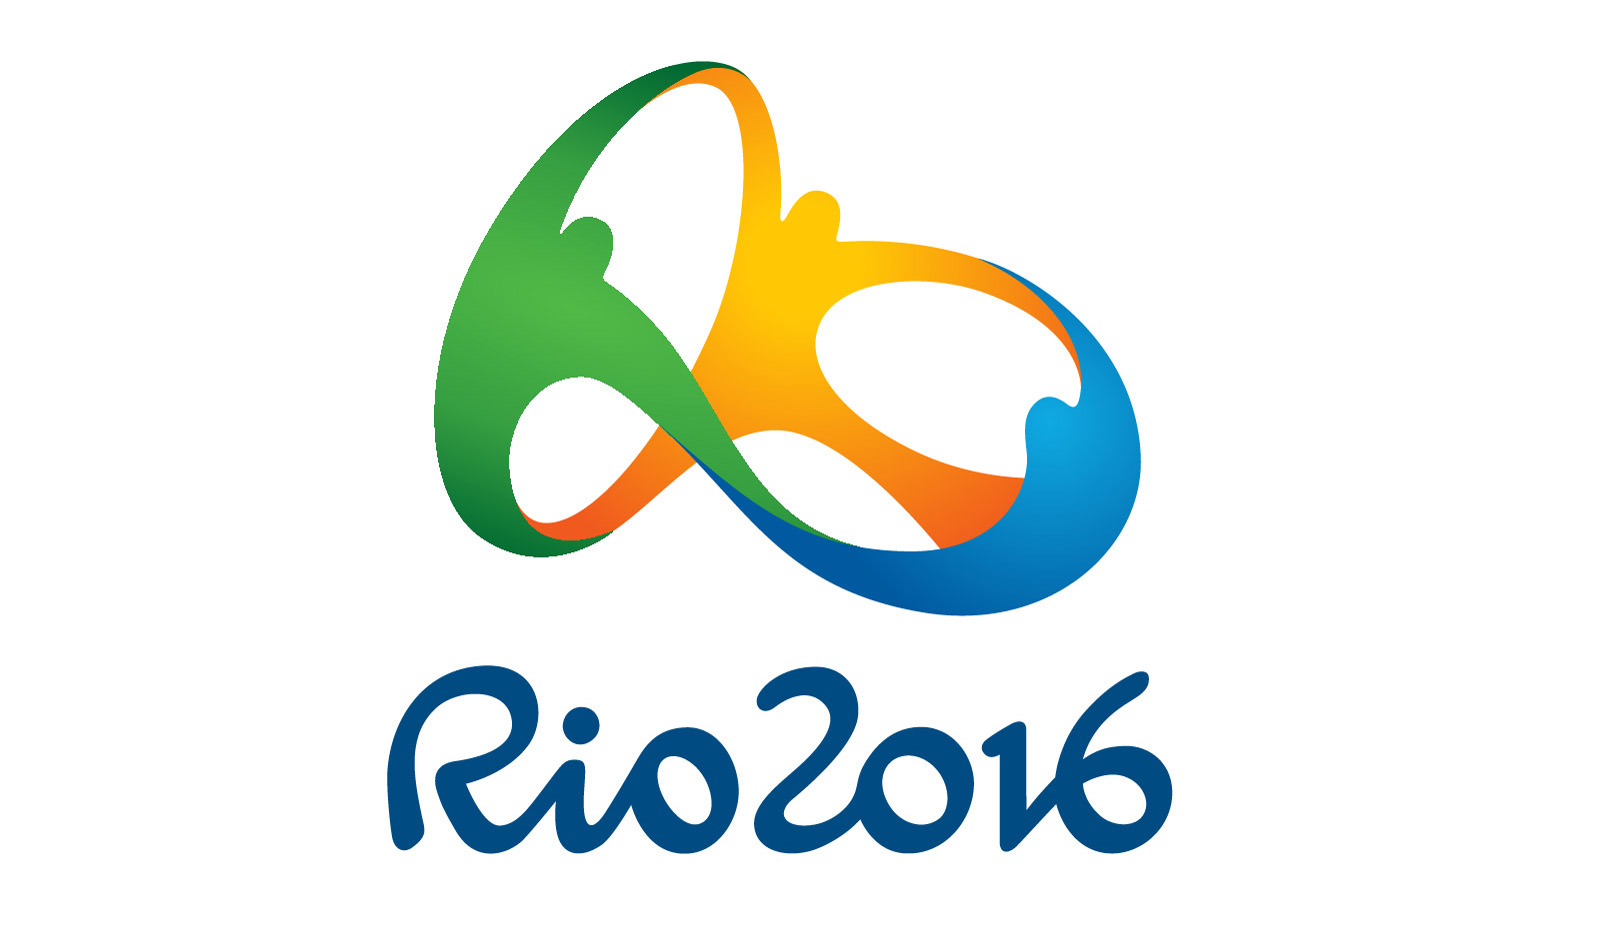 Rio 2016 Olympic Logo Vector Graphic_12